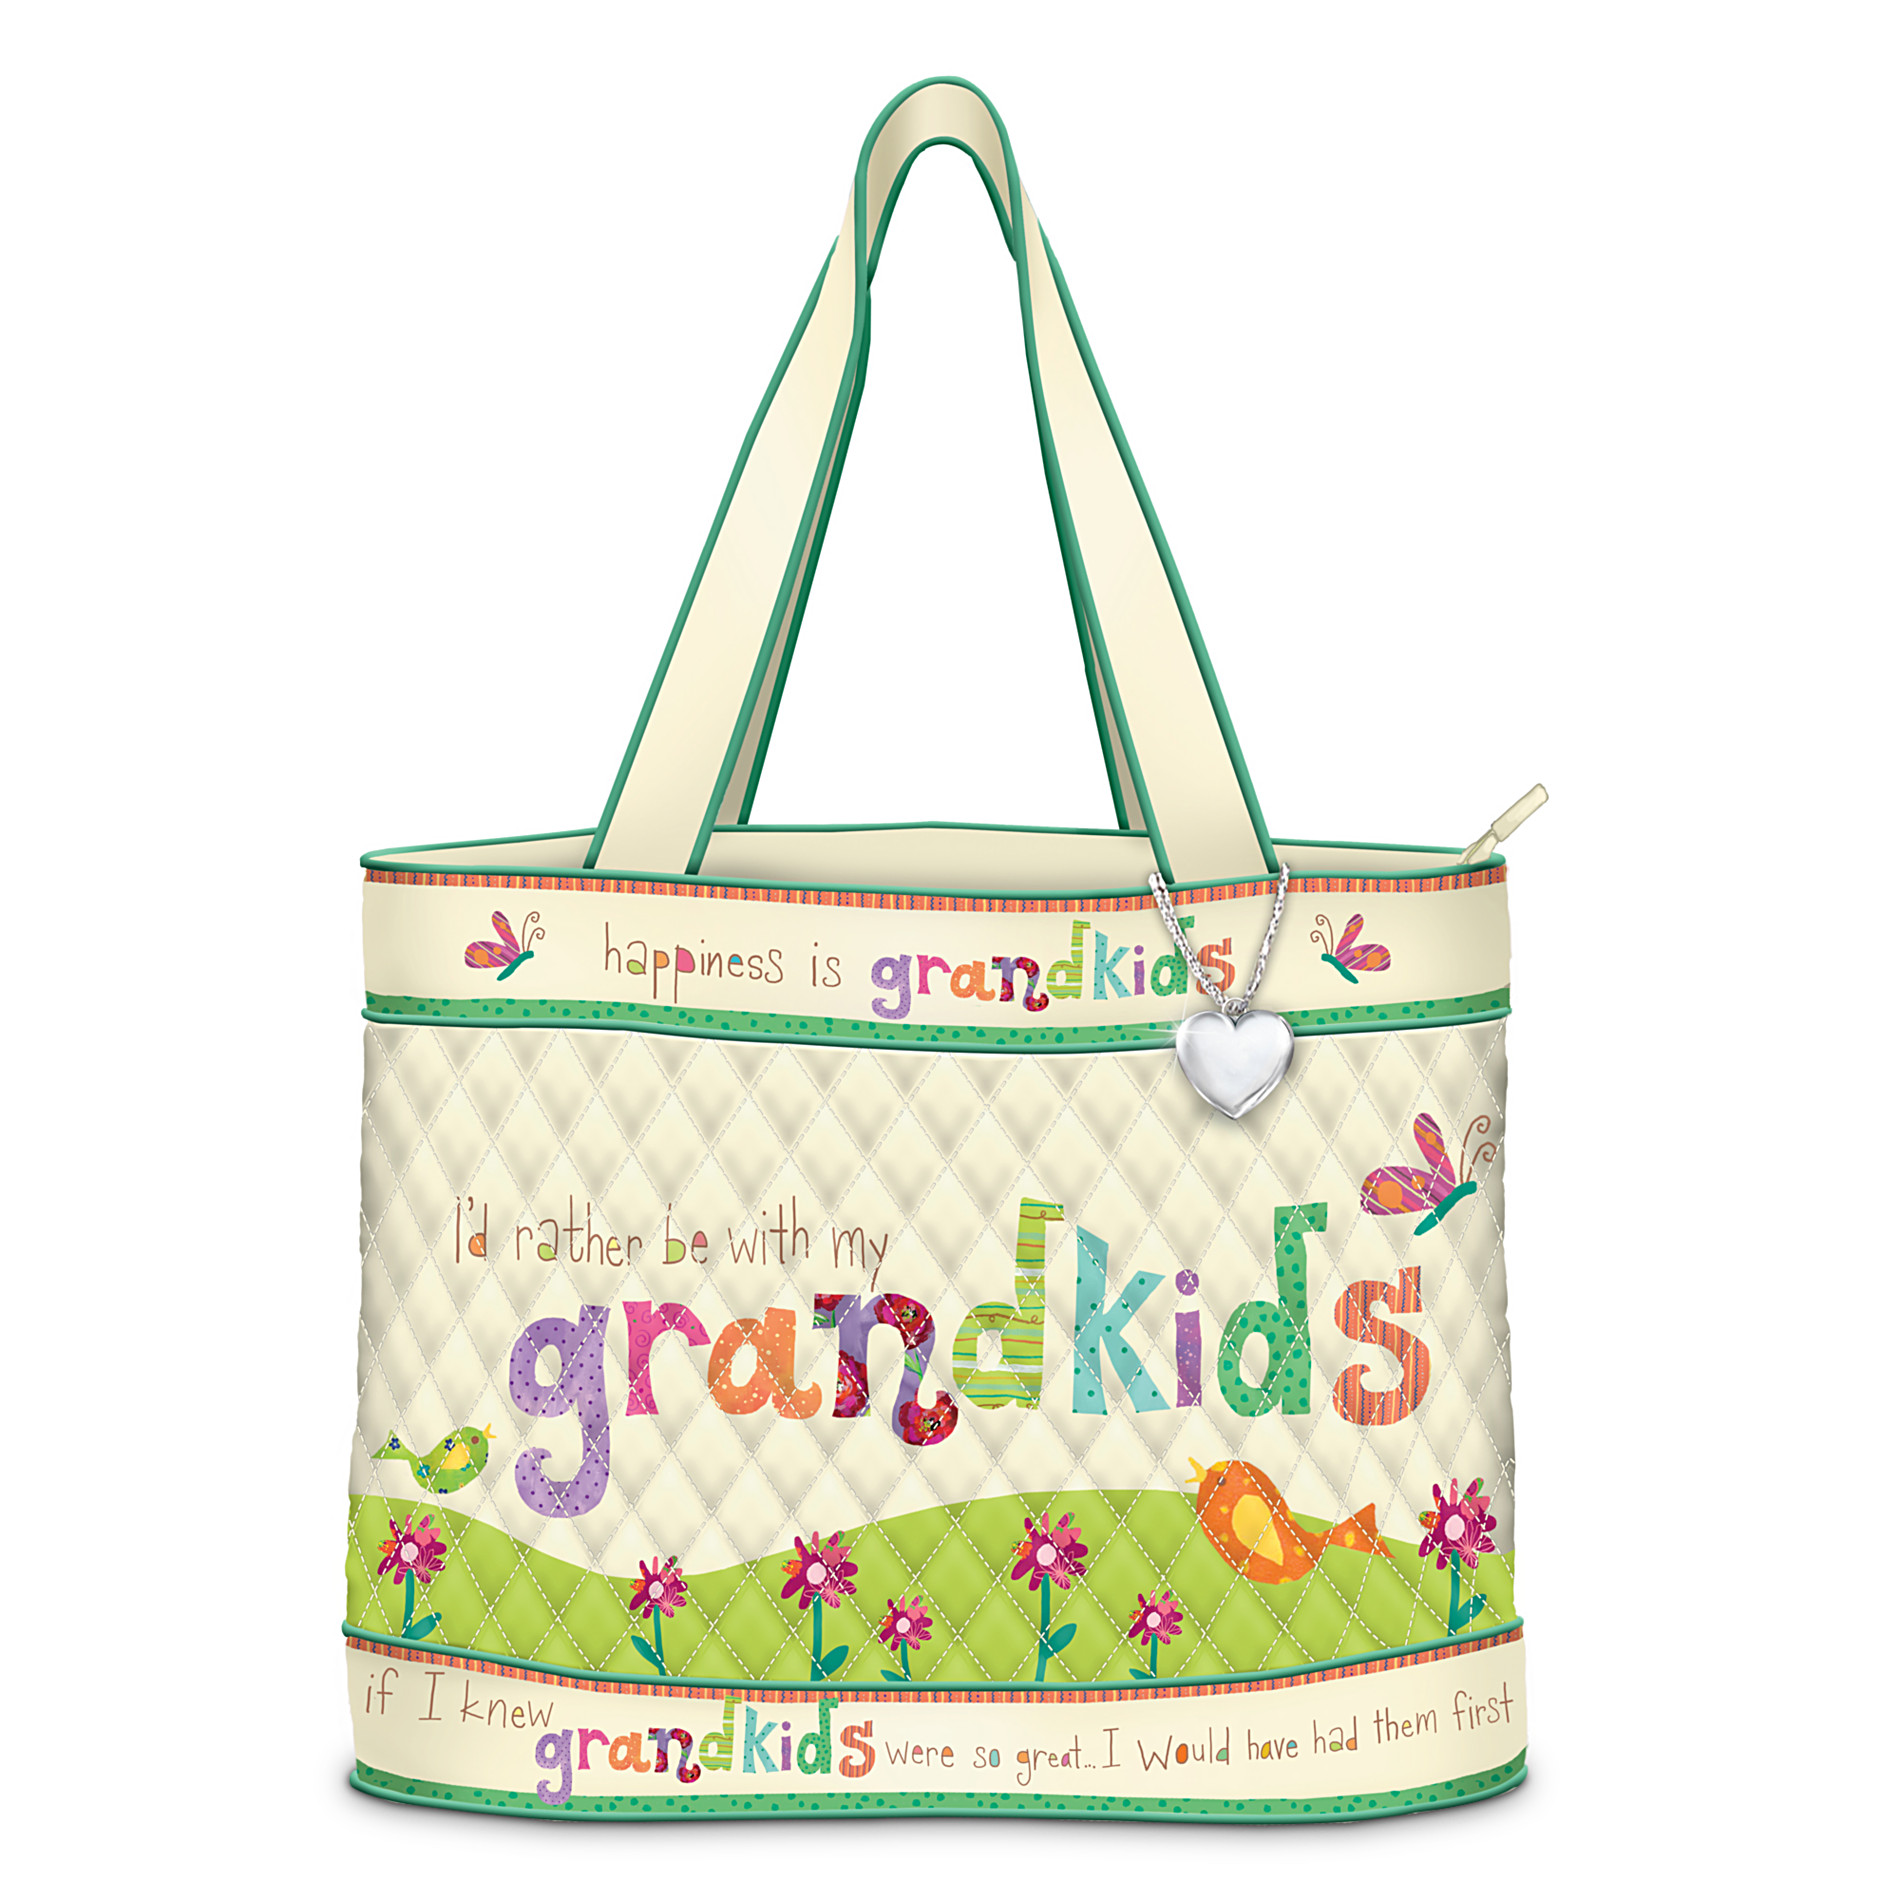 The Bradford Exchange Grandmother Tote Bag: Grandkids Rule! at Sears.com